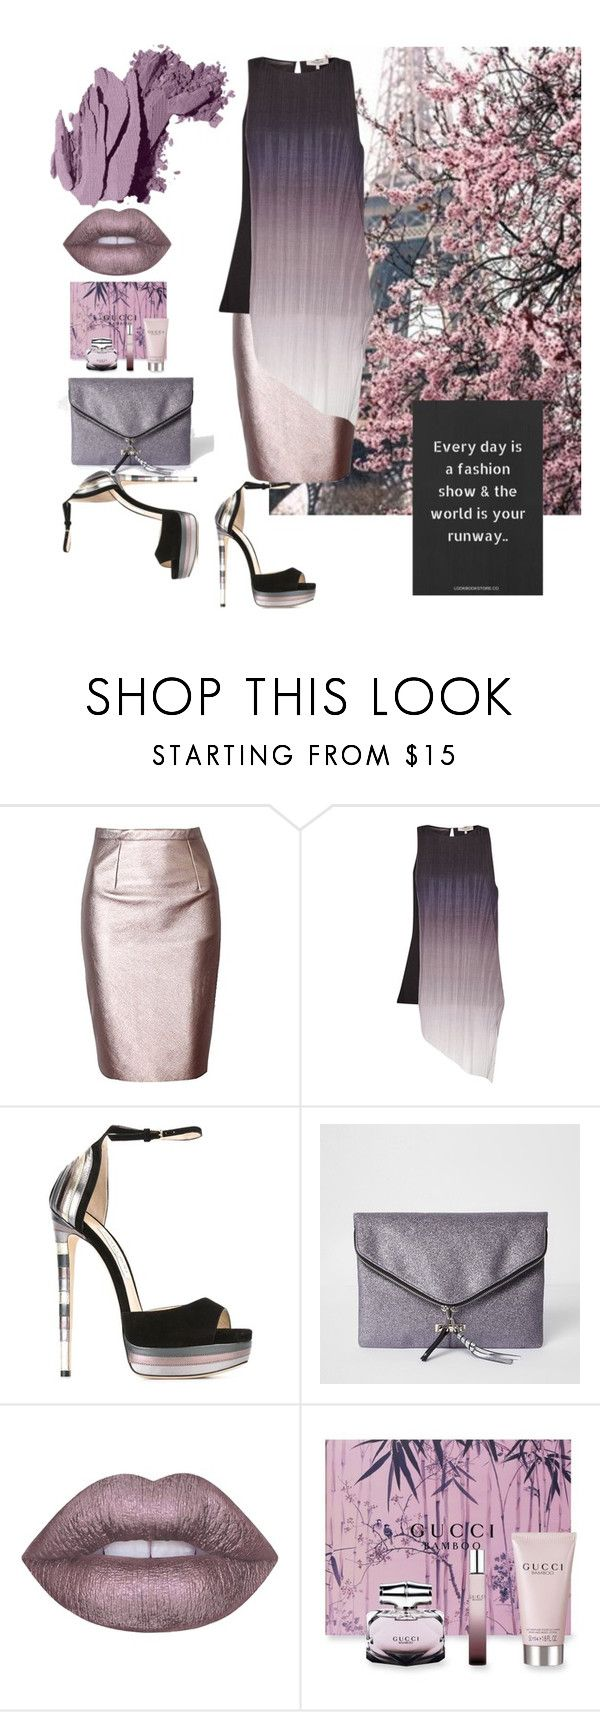 """""""Untitled #83"""" by riuk ❤ liked on Polyvore featuring Chanel, Great Plains, Jimmy Choo, River Island, Lime Crime, Gucci and Bobbi Brown Cosmetics"""